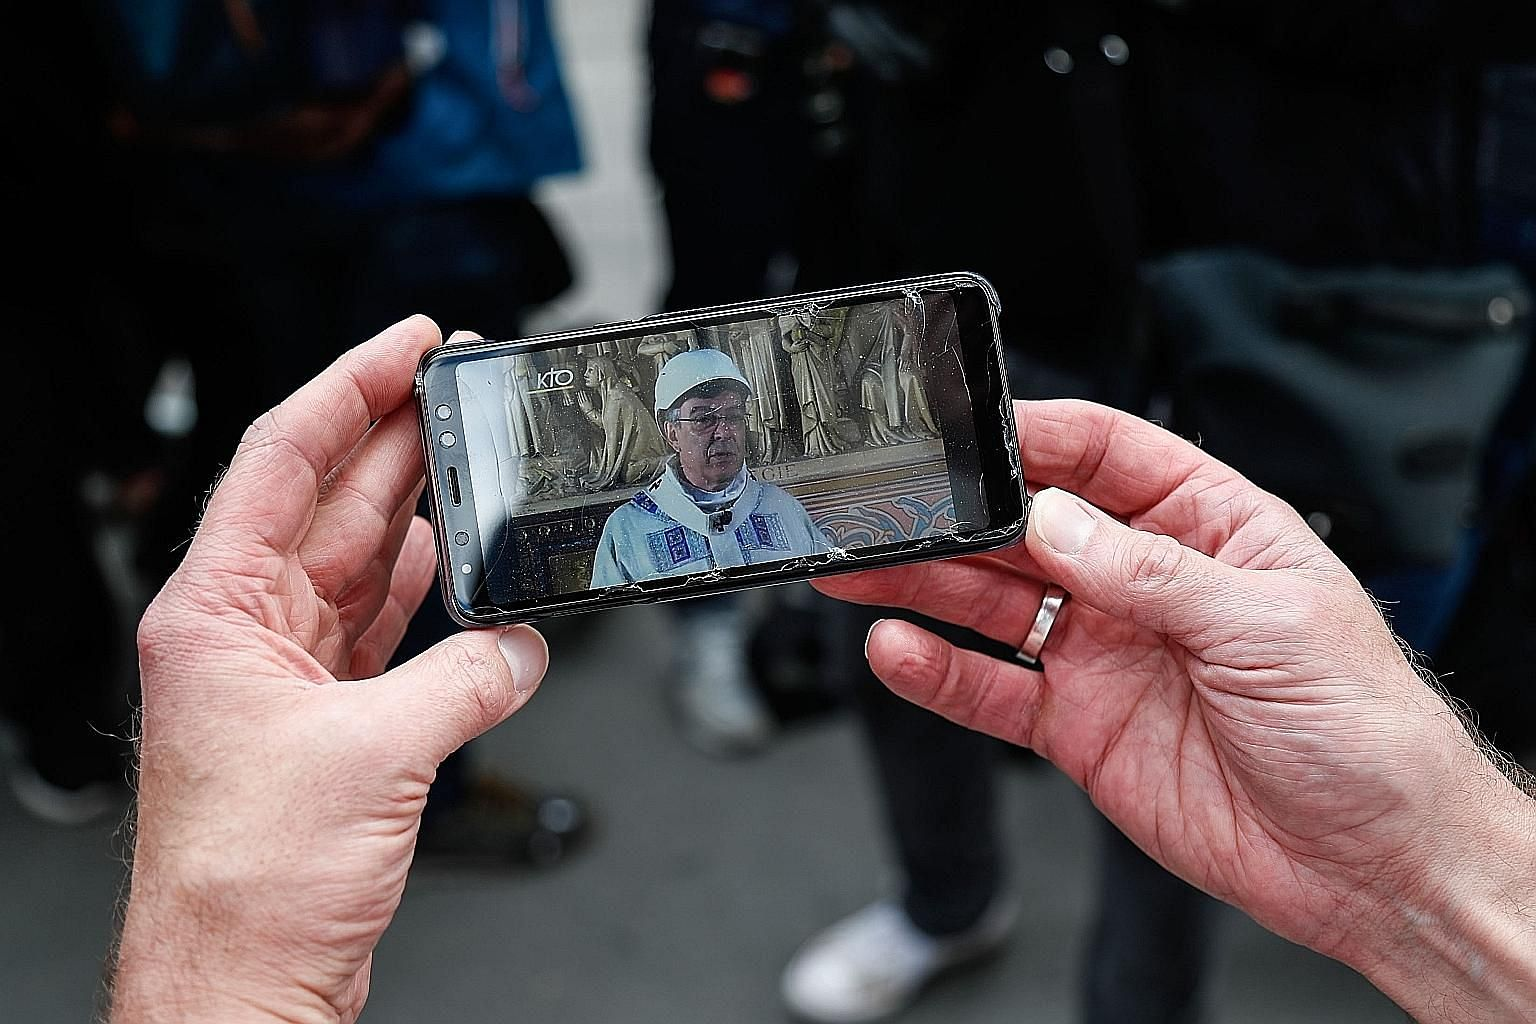 A mobile phone capturing the Archbishop of Paris Michel Aupetit, wearing a hard hat, holding mass in Notre-Dame Cathedral yesterday, the first celebration since it caught fire on April 15. PHOTO: AGENCE FRANCE-PRESSE